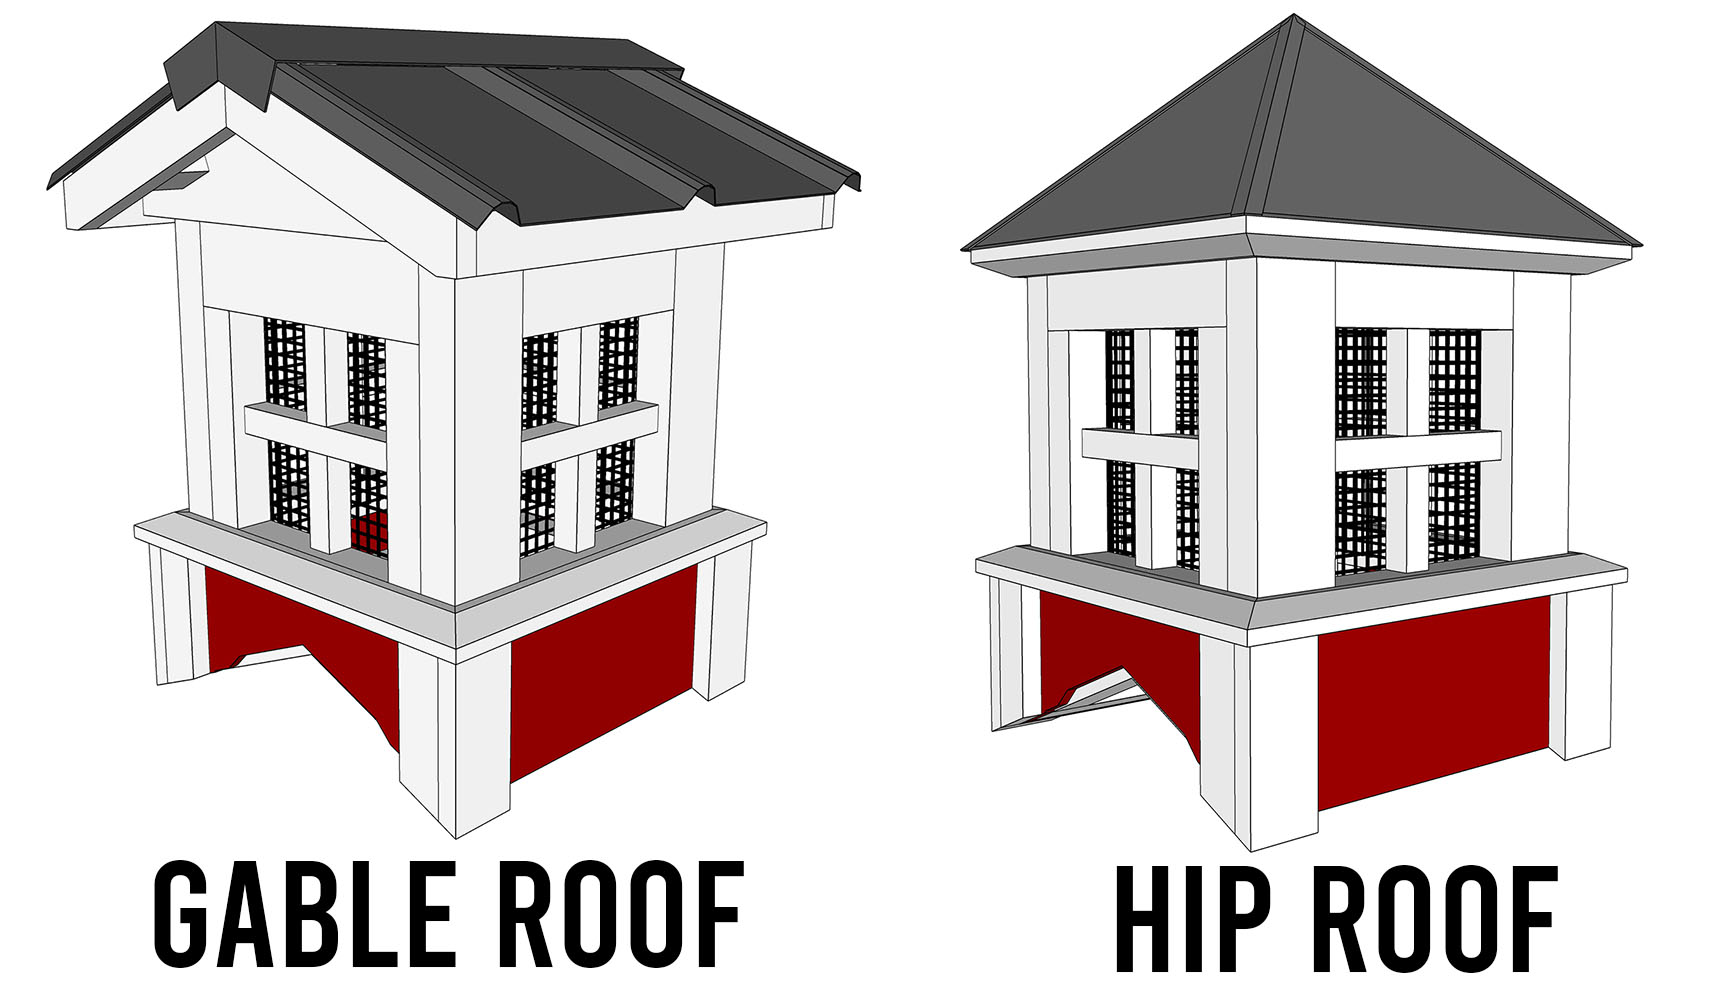 GABLE ROOF VS HIP ROOF CUPOLA